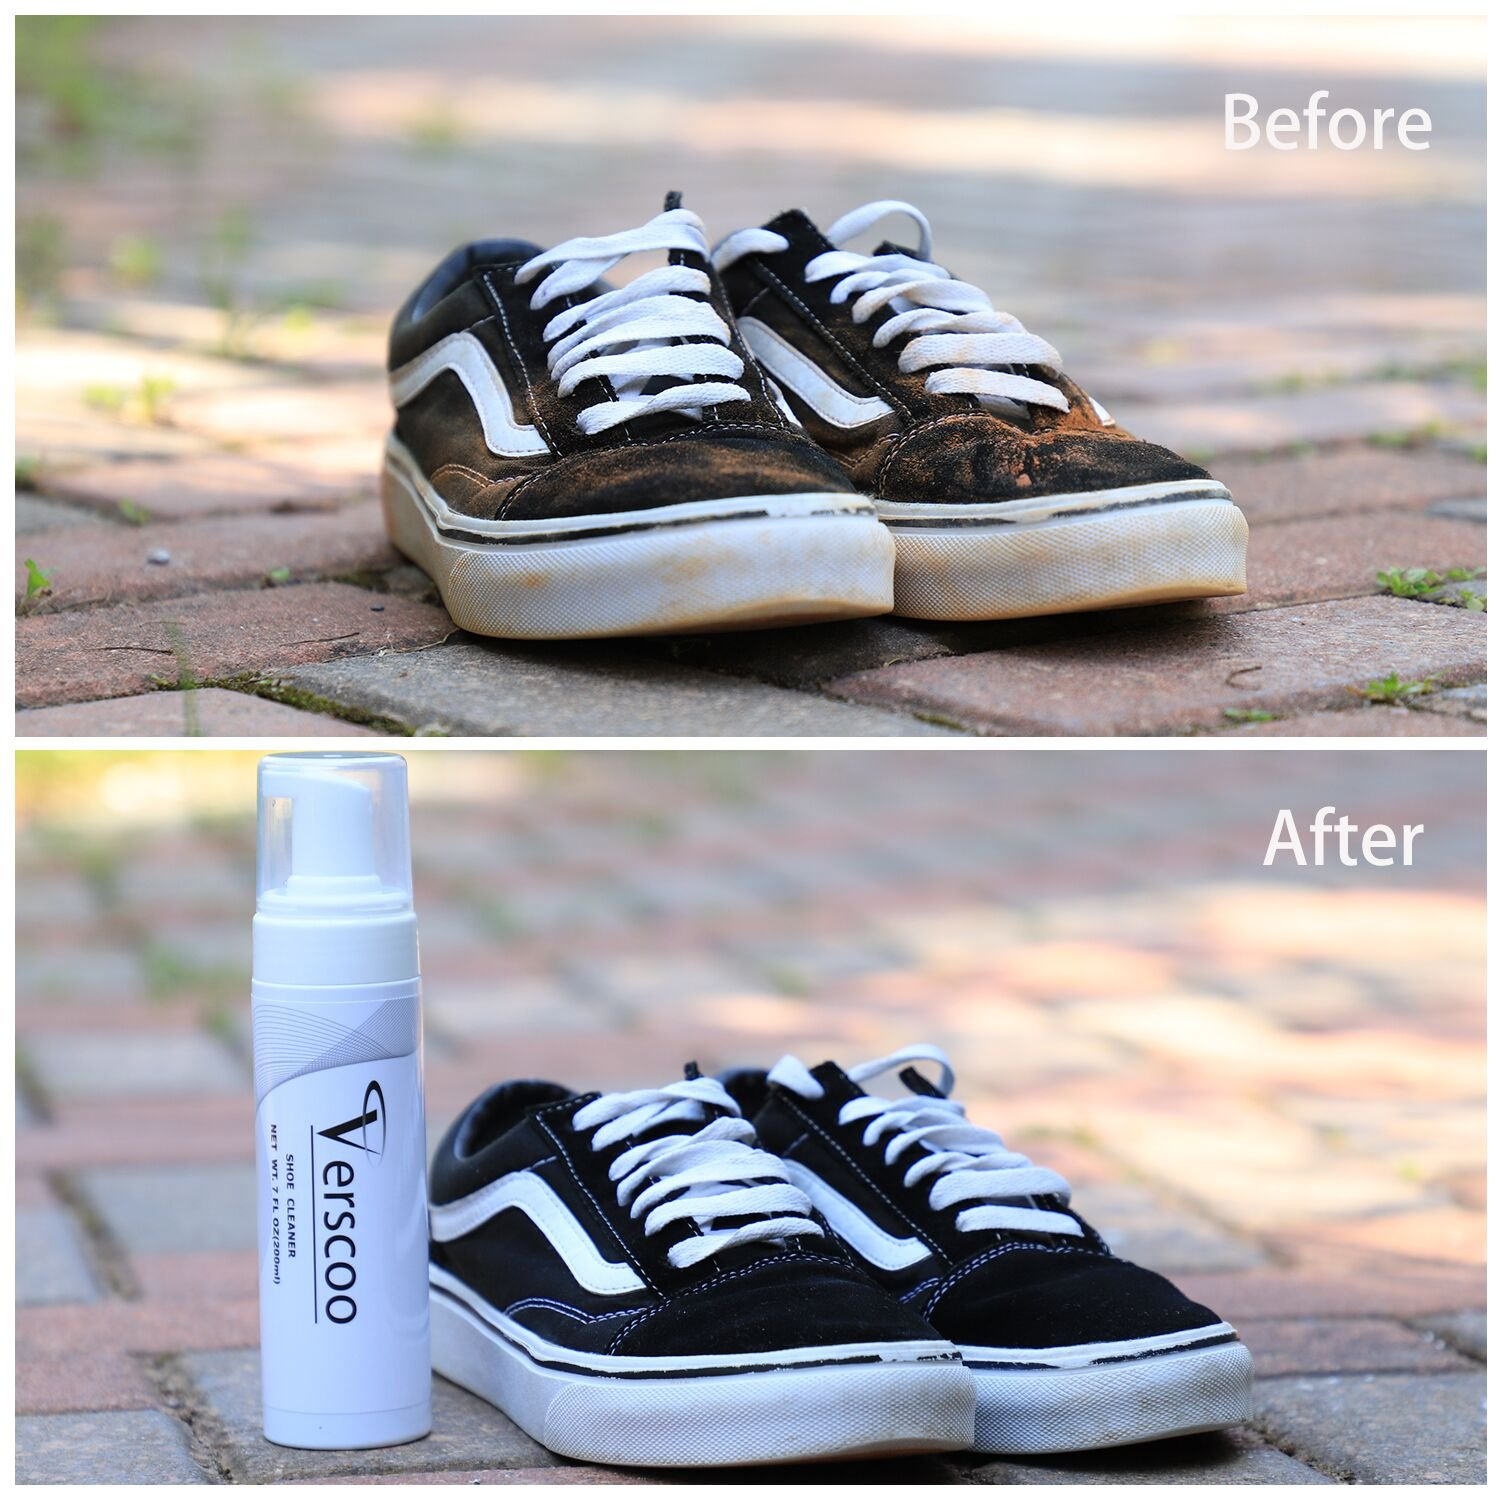 Shoe Cleaner Kit, Verscoo Fabric Cleaner Solution 7 Oz for Leather, Sneaker and Mesh Shoes by Verscoo (Image #3)